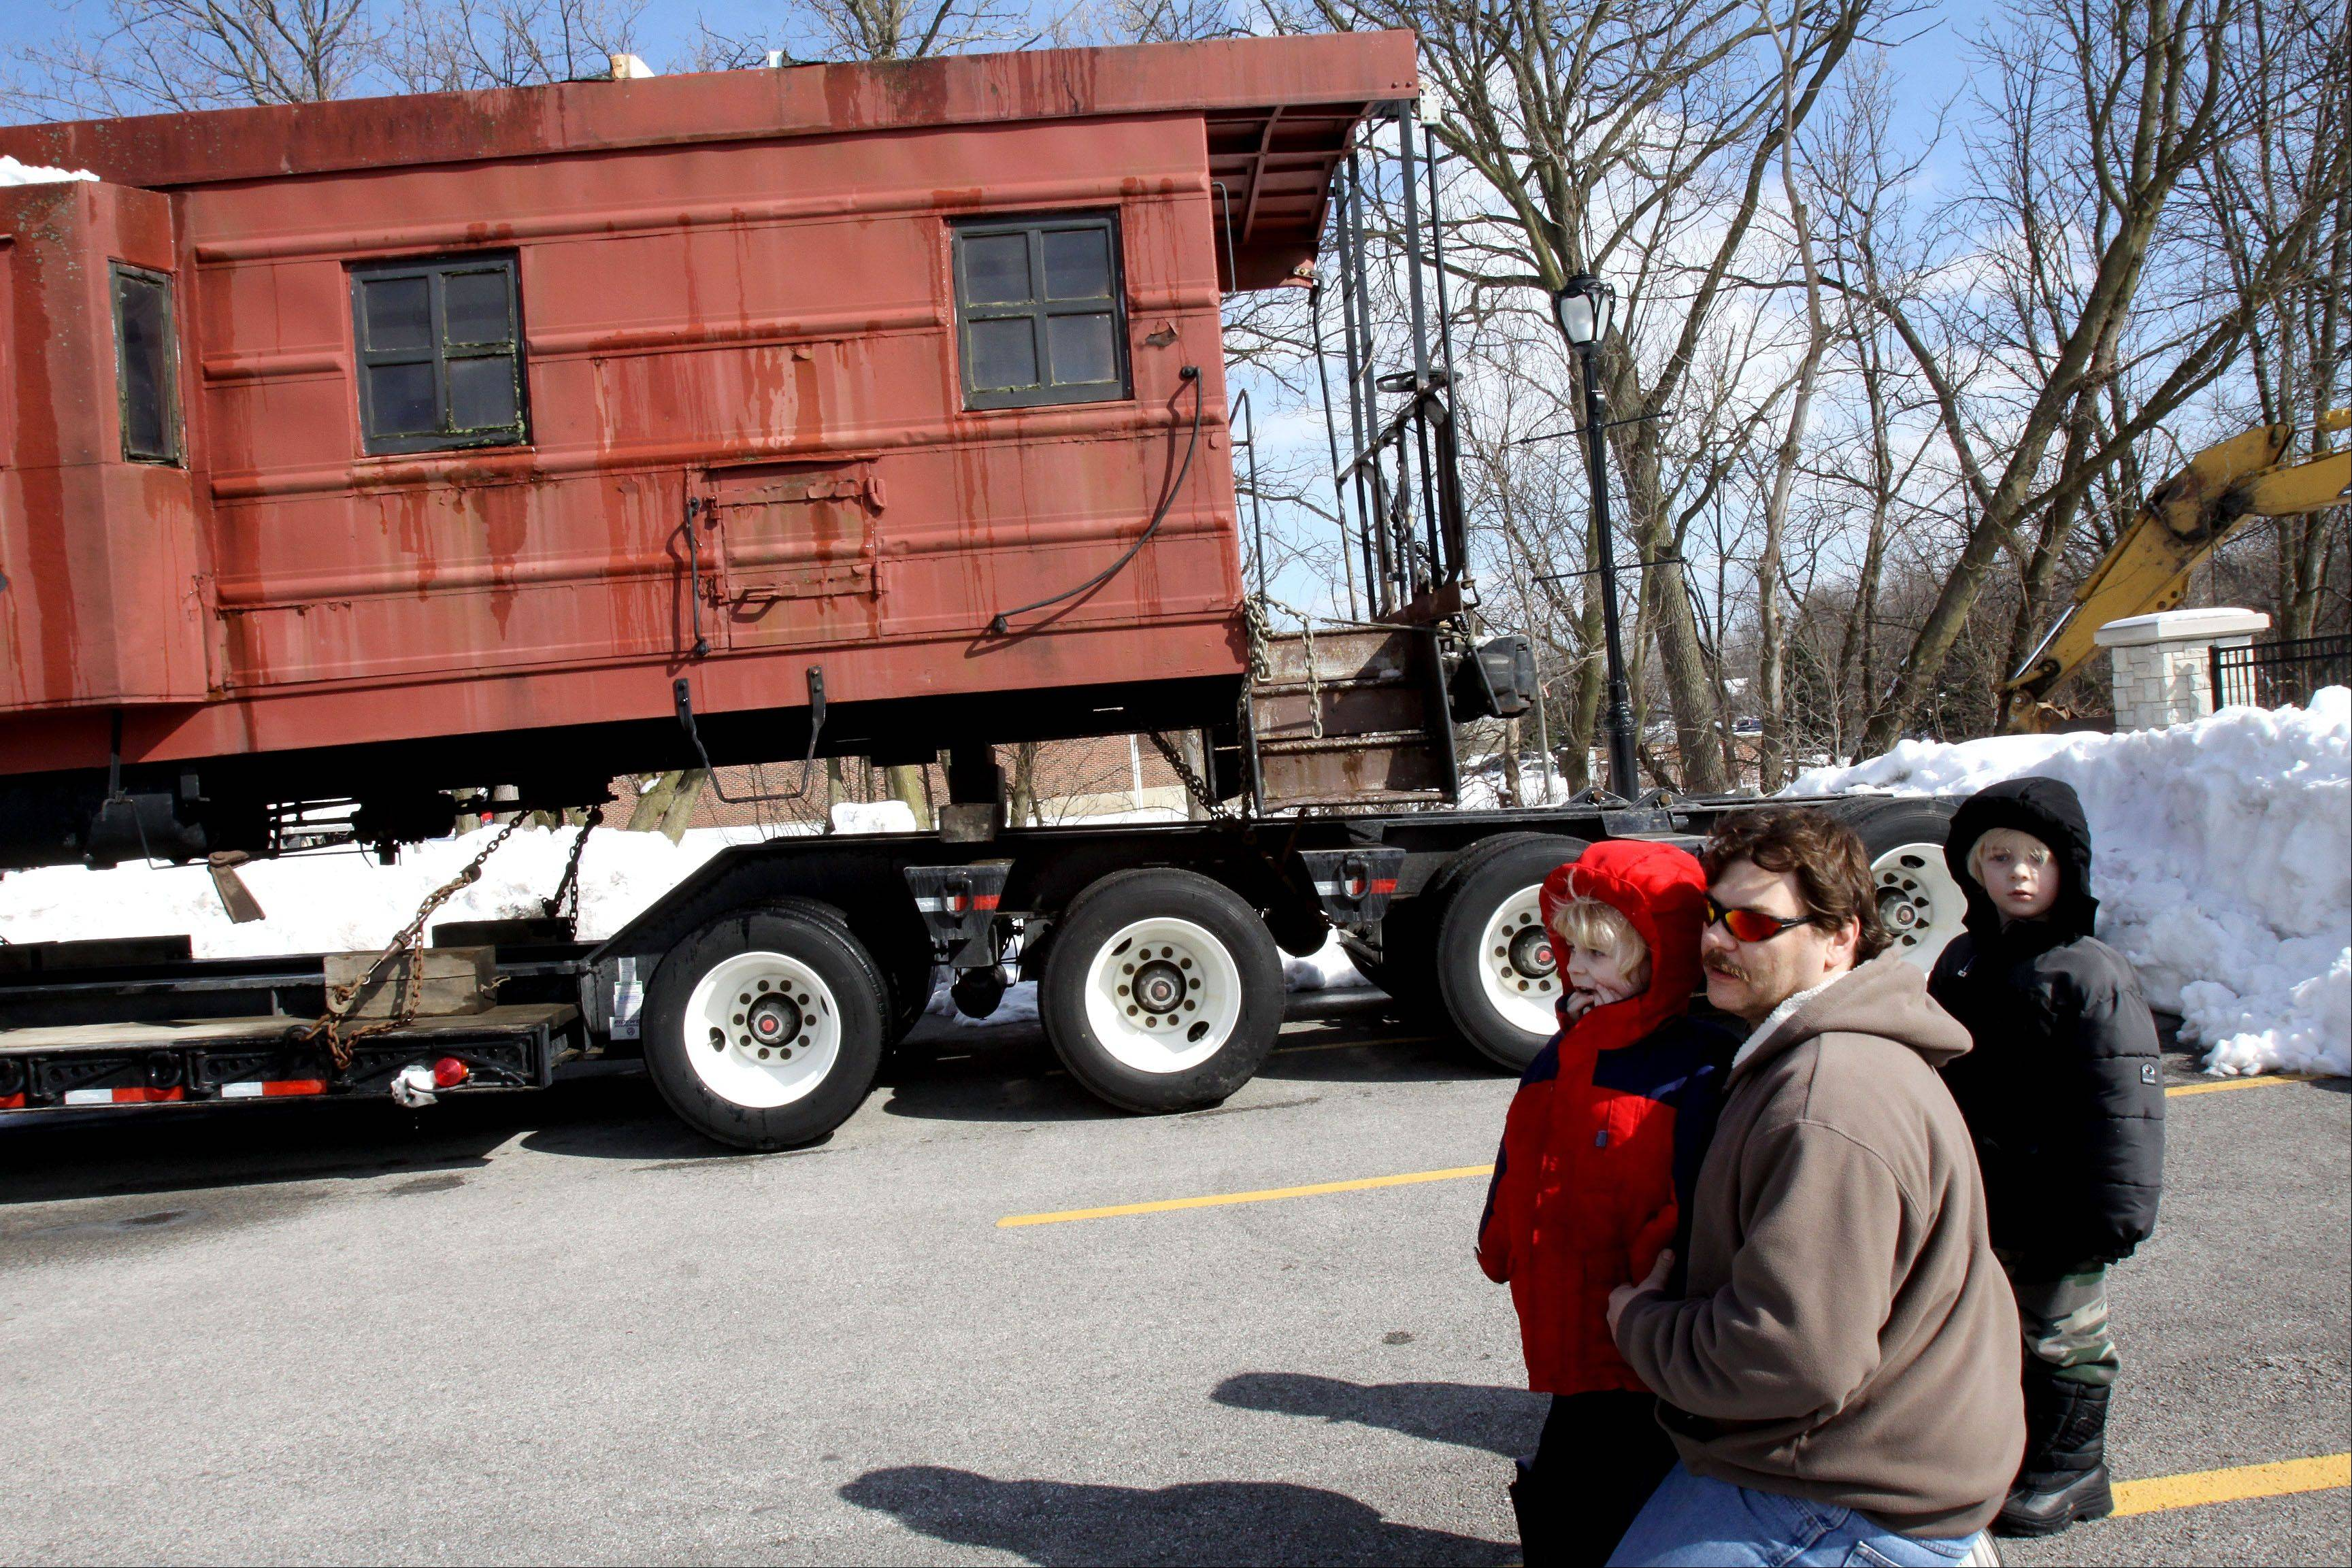 Mike Swintek of Wood Dale brought his twins Michael, left, and Matthew, 4, to see the caboose as it was moved to its new home Thursday at the Itasca Historical Depot Museum.